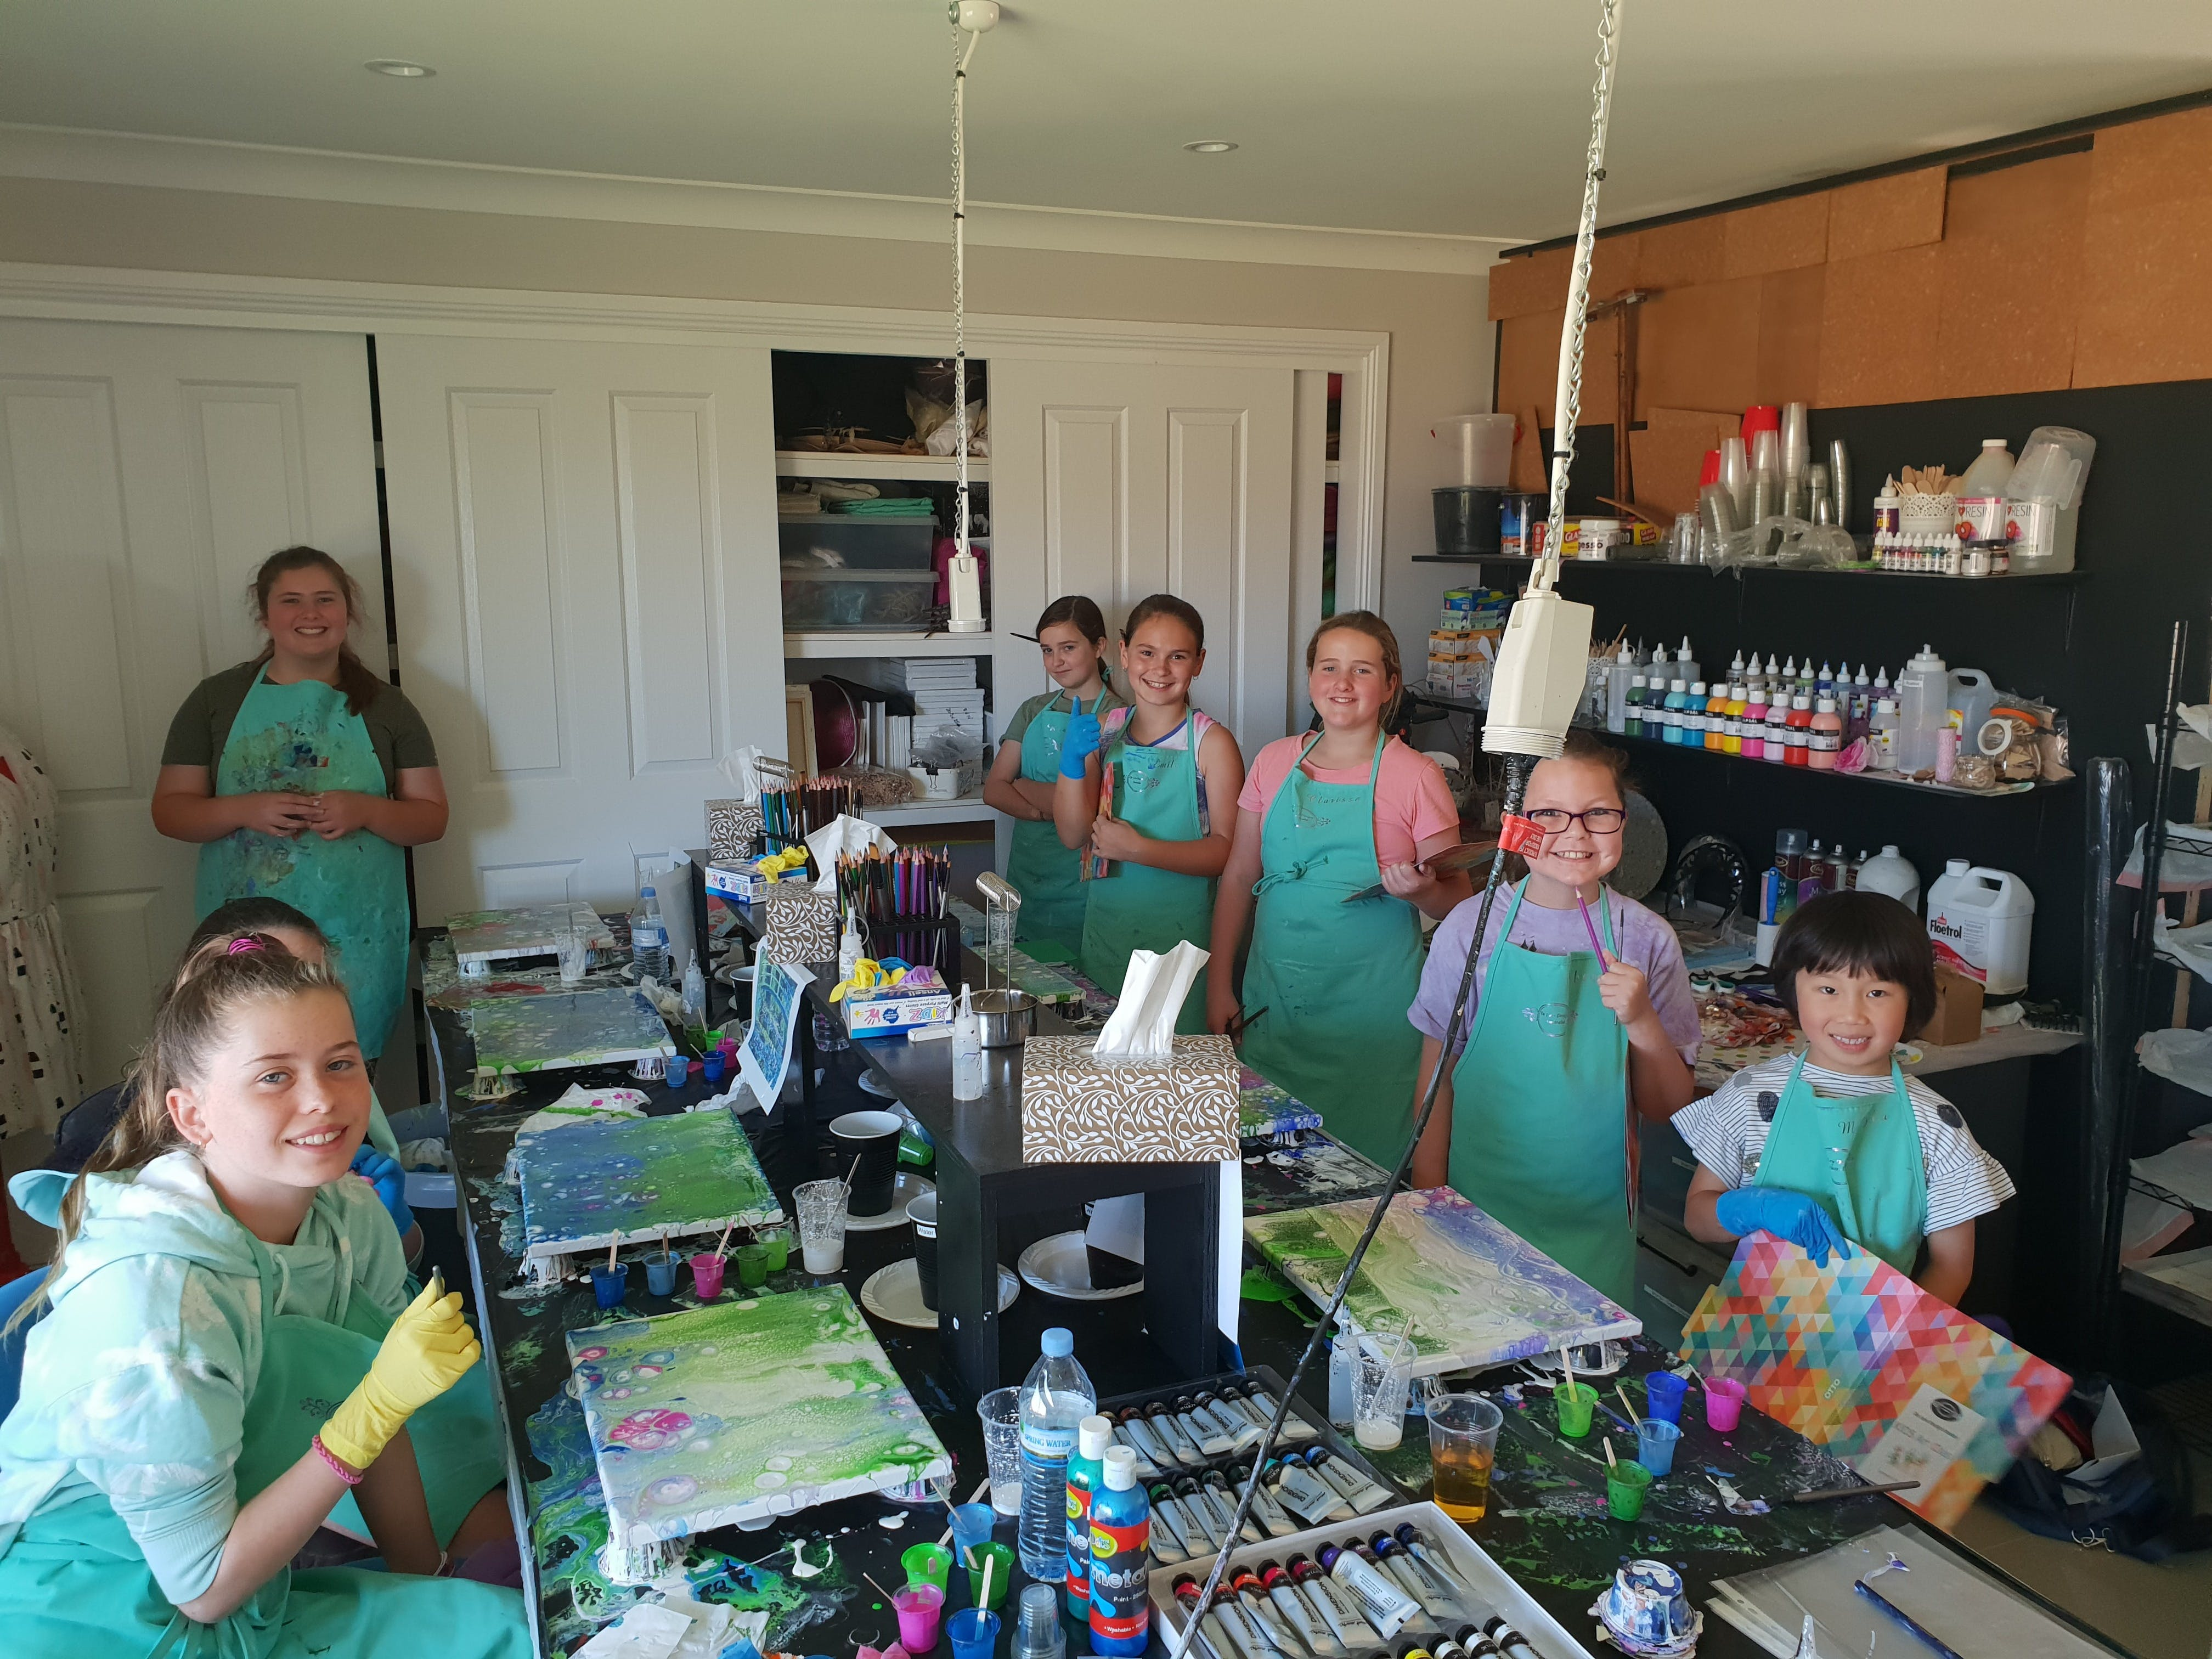 School holidays - Kids art class - Painting - Accommodation Sydney